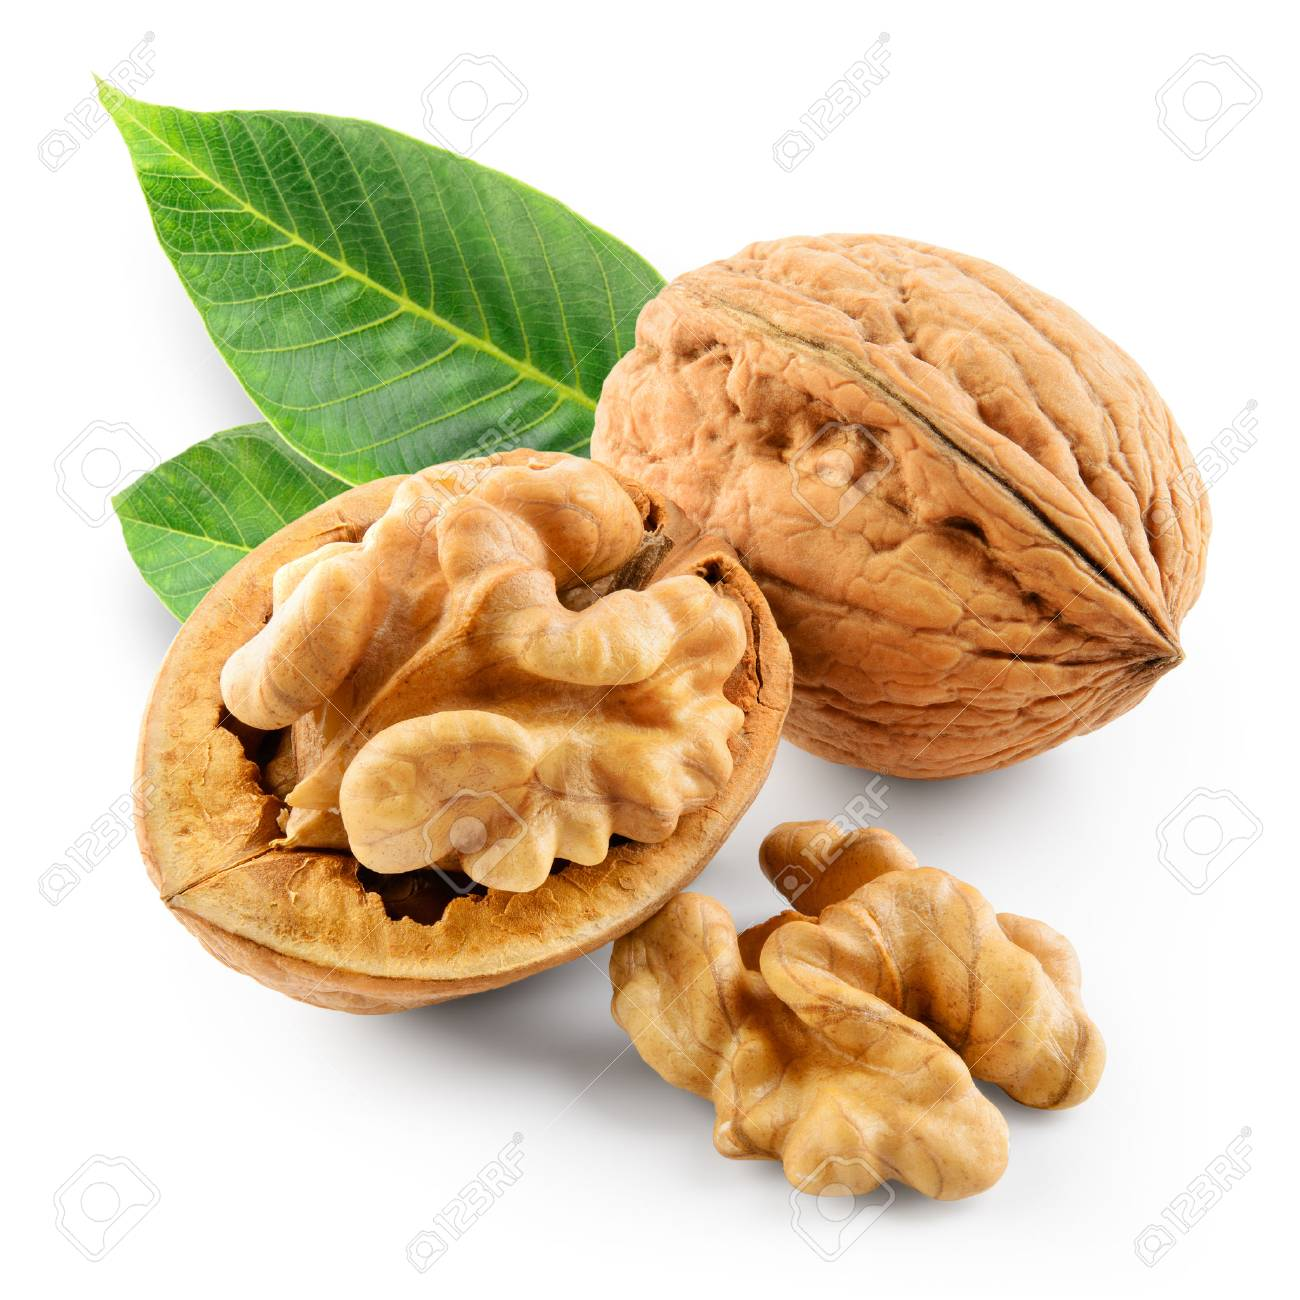 Walnuts with leaves in closeup. With clipping path. - 94503703